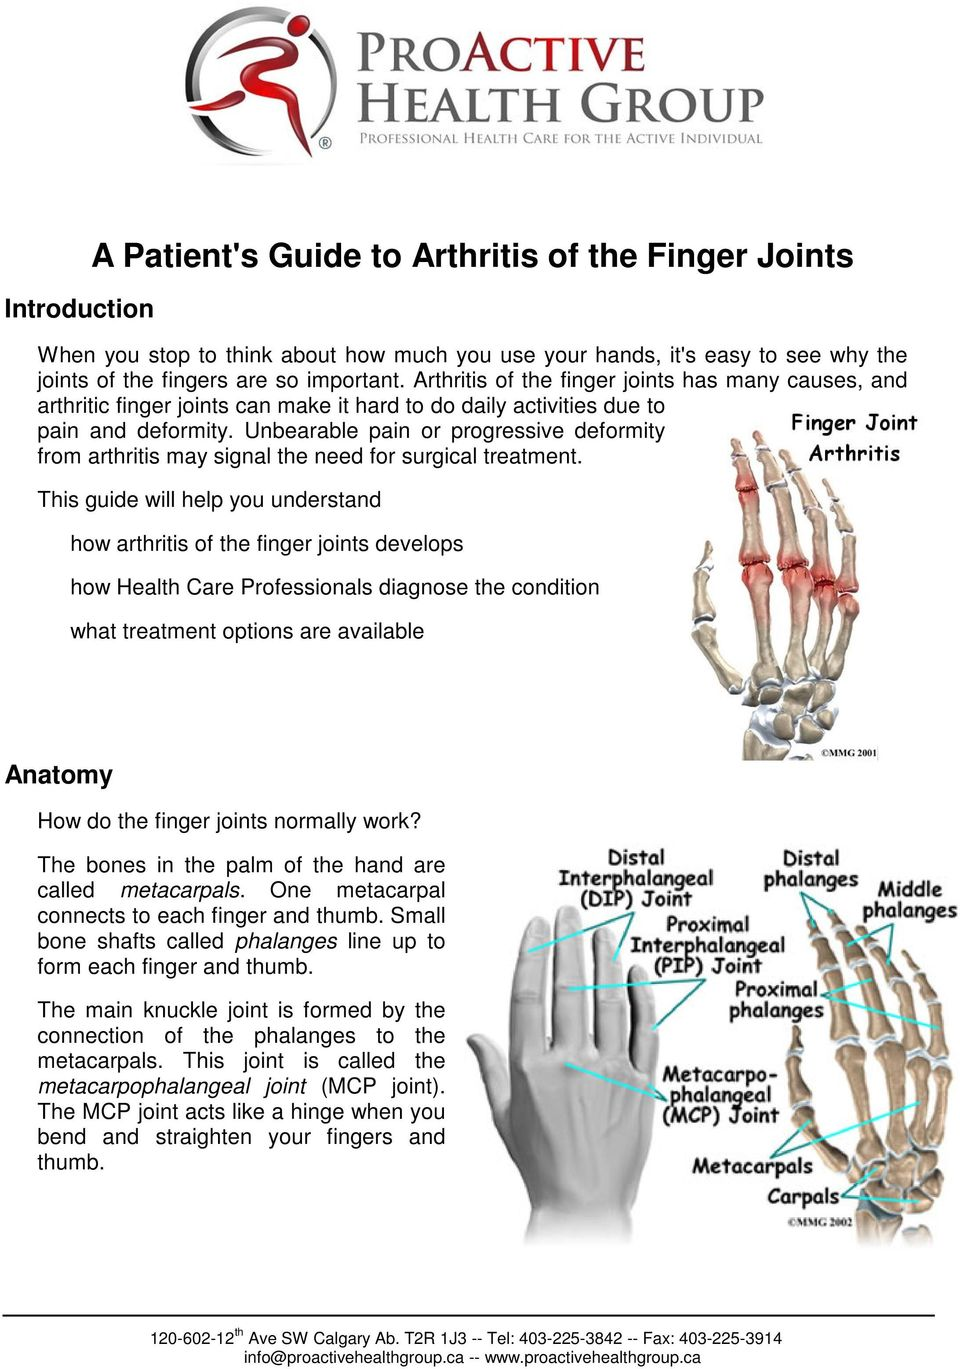 Unbearable pain or progressive deformity from arthritis may signal the need for surgical treatment.